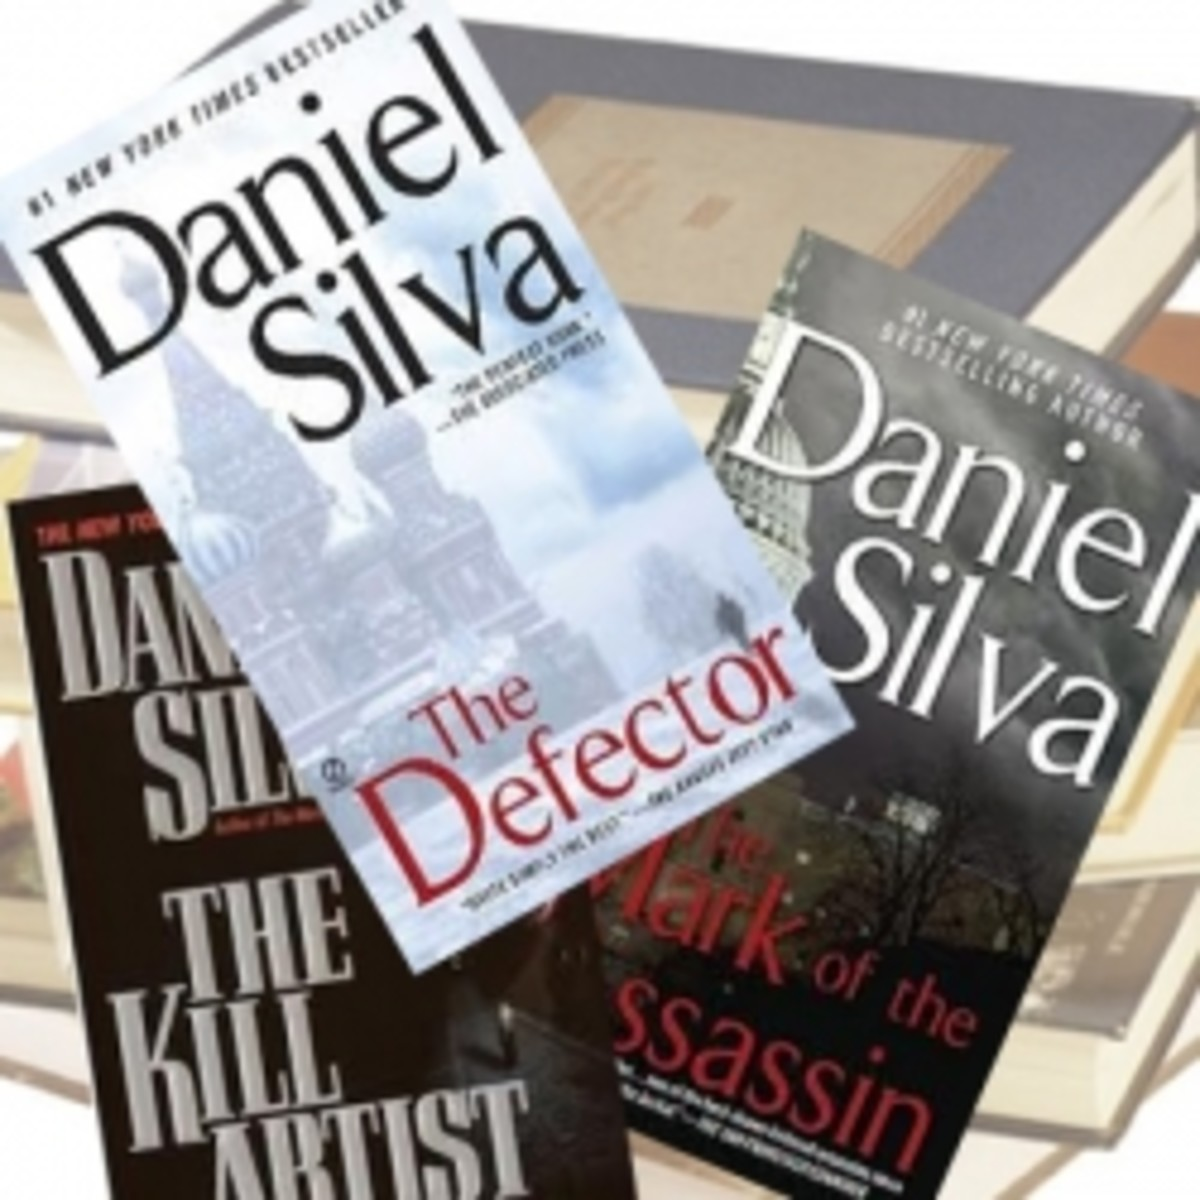 Daniel Silva Books In Order Of Publication